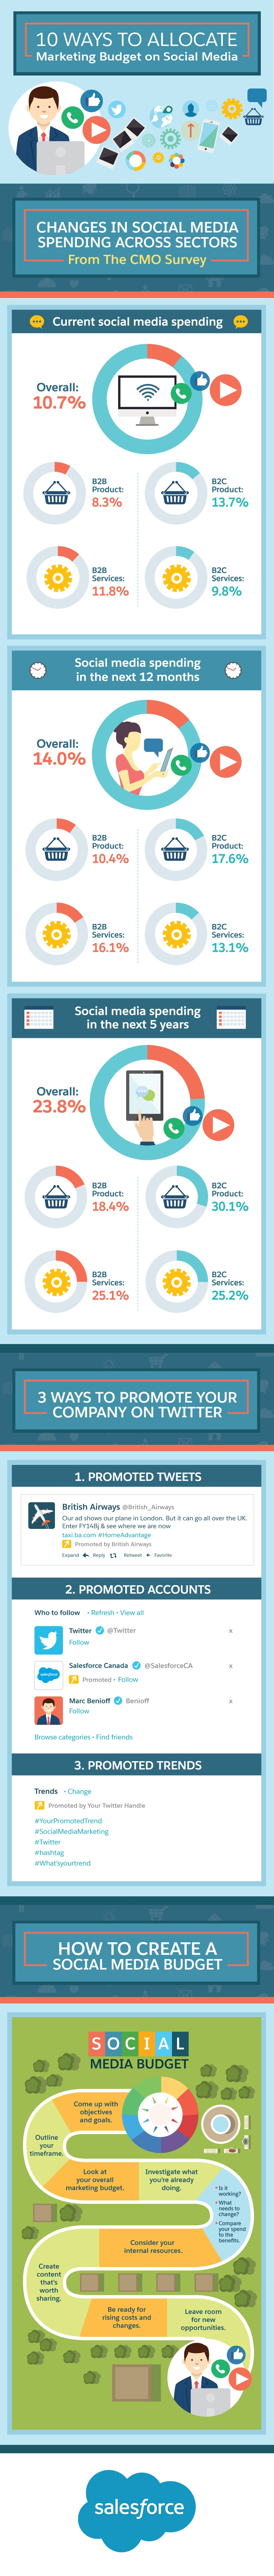 10 Ways to Use Your Marketing Budget to Advertise on Social Media - infographic